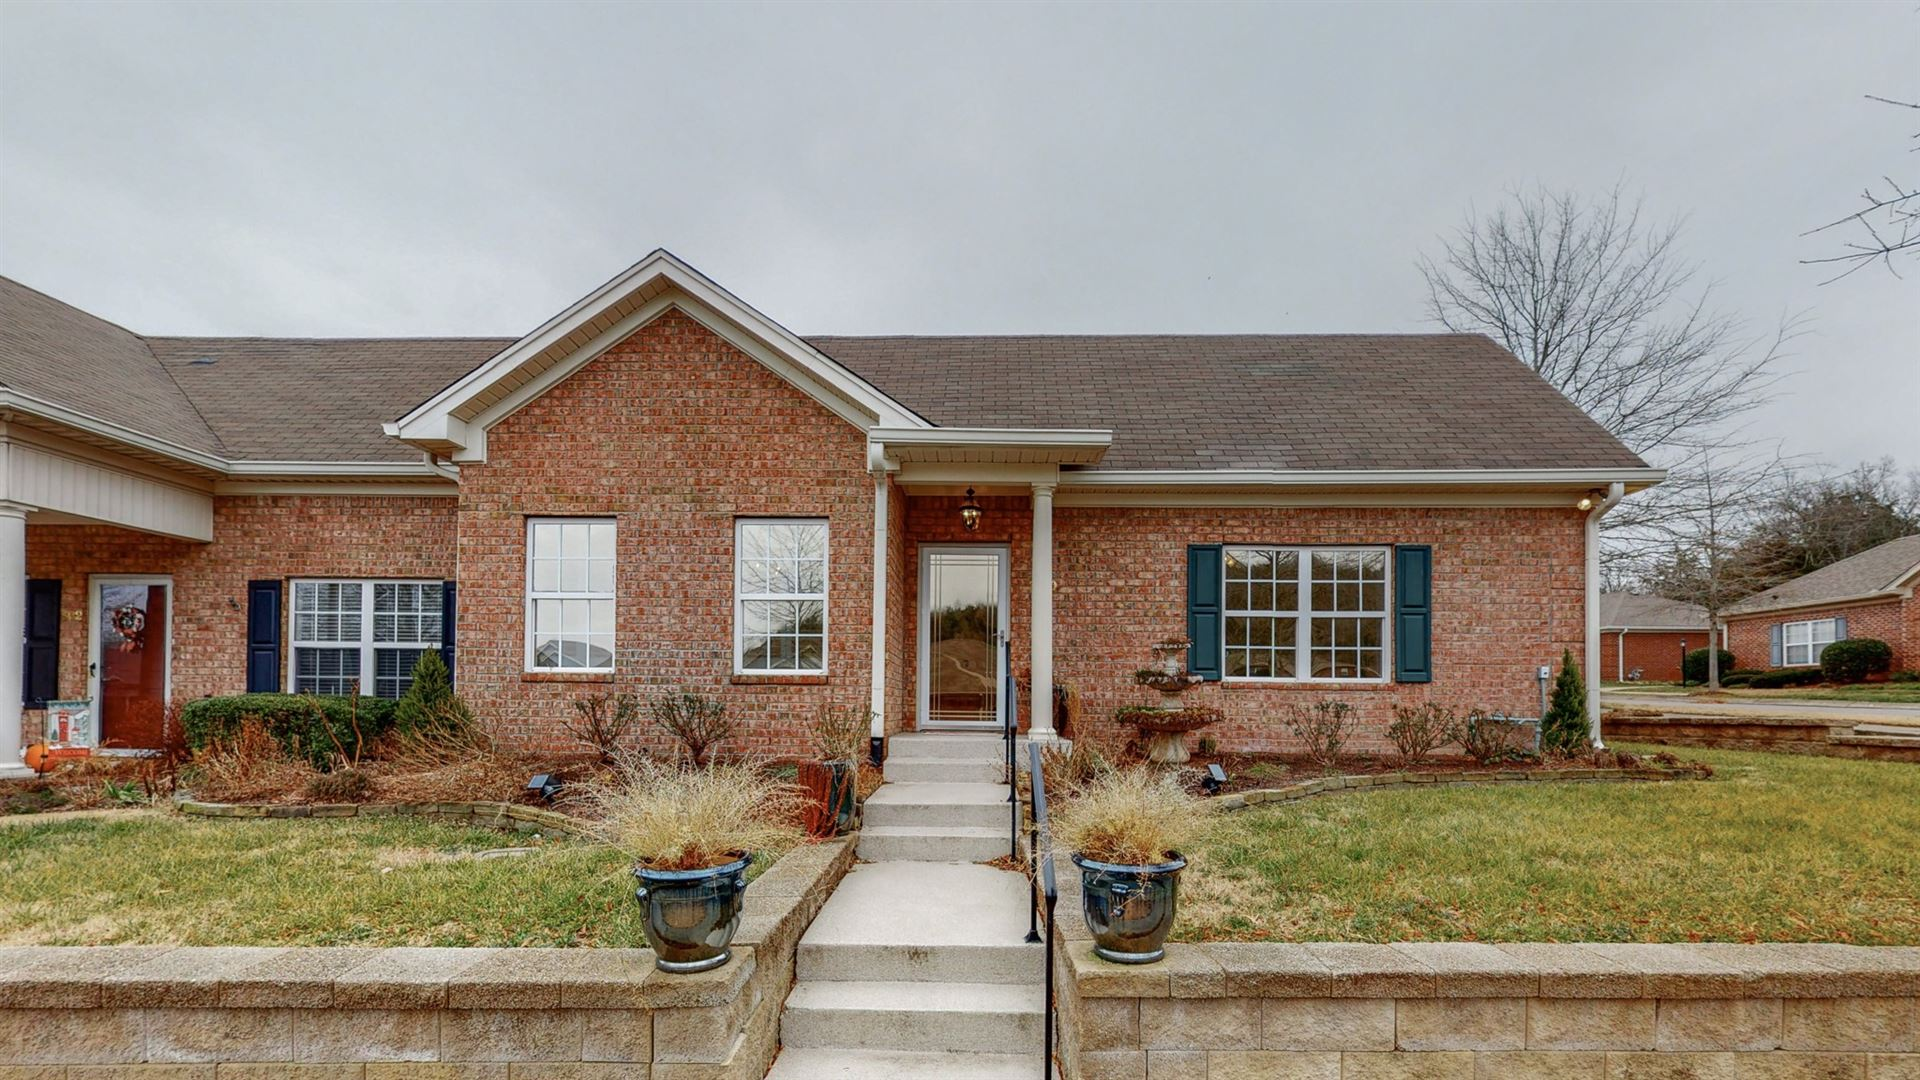 Photo of 300 Connelly Ct, Franklin, TN 37064 (MLS # 2219490)